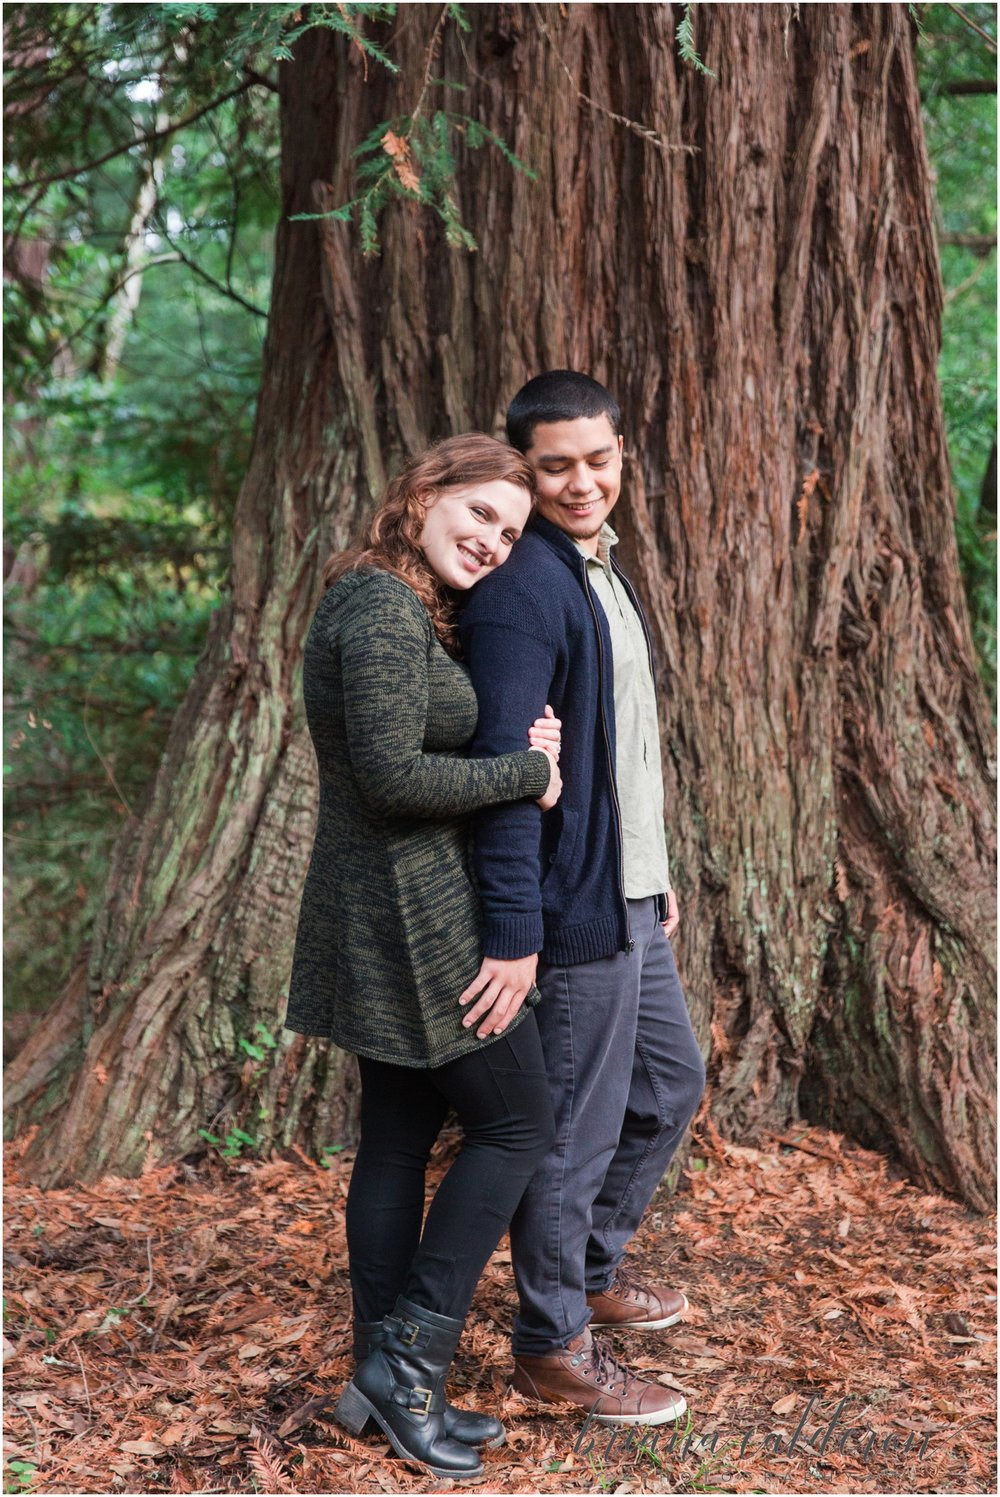 Engagement pictures at Henry Cowell Redwoods in Felton, CA by Briana Calderon Photography_1346.jpg